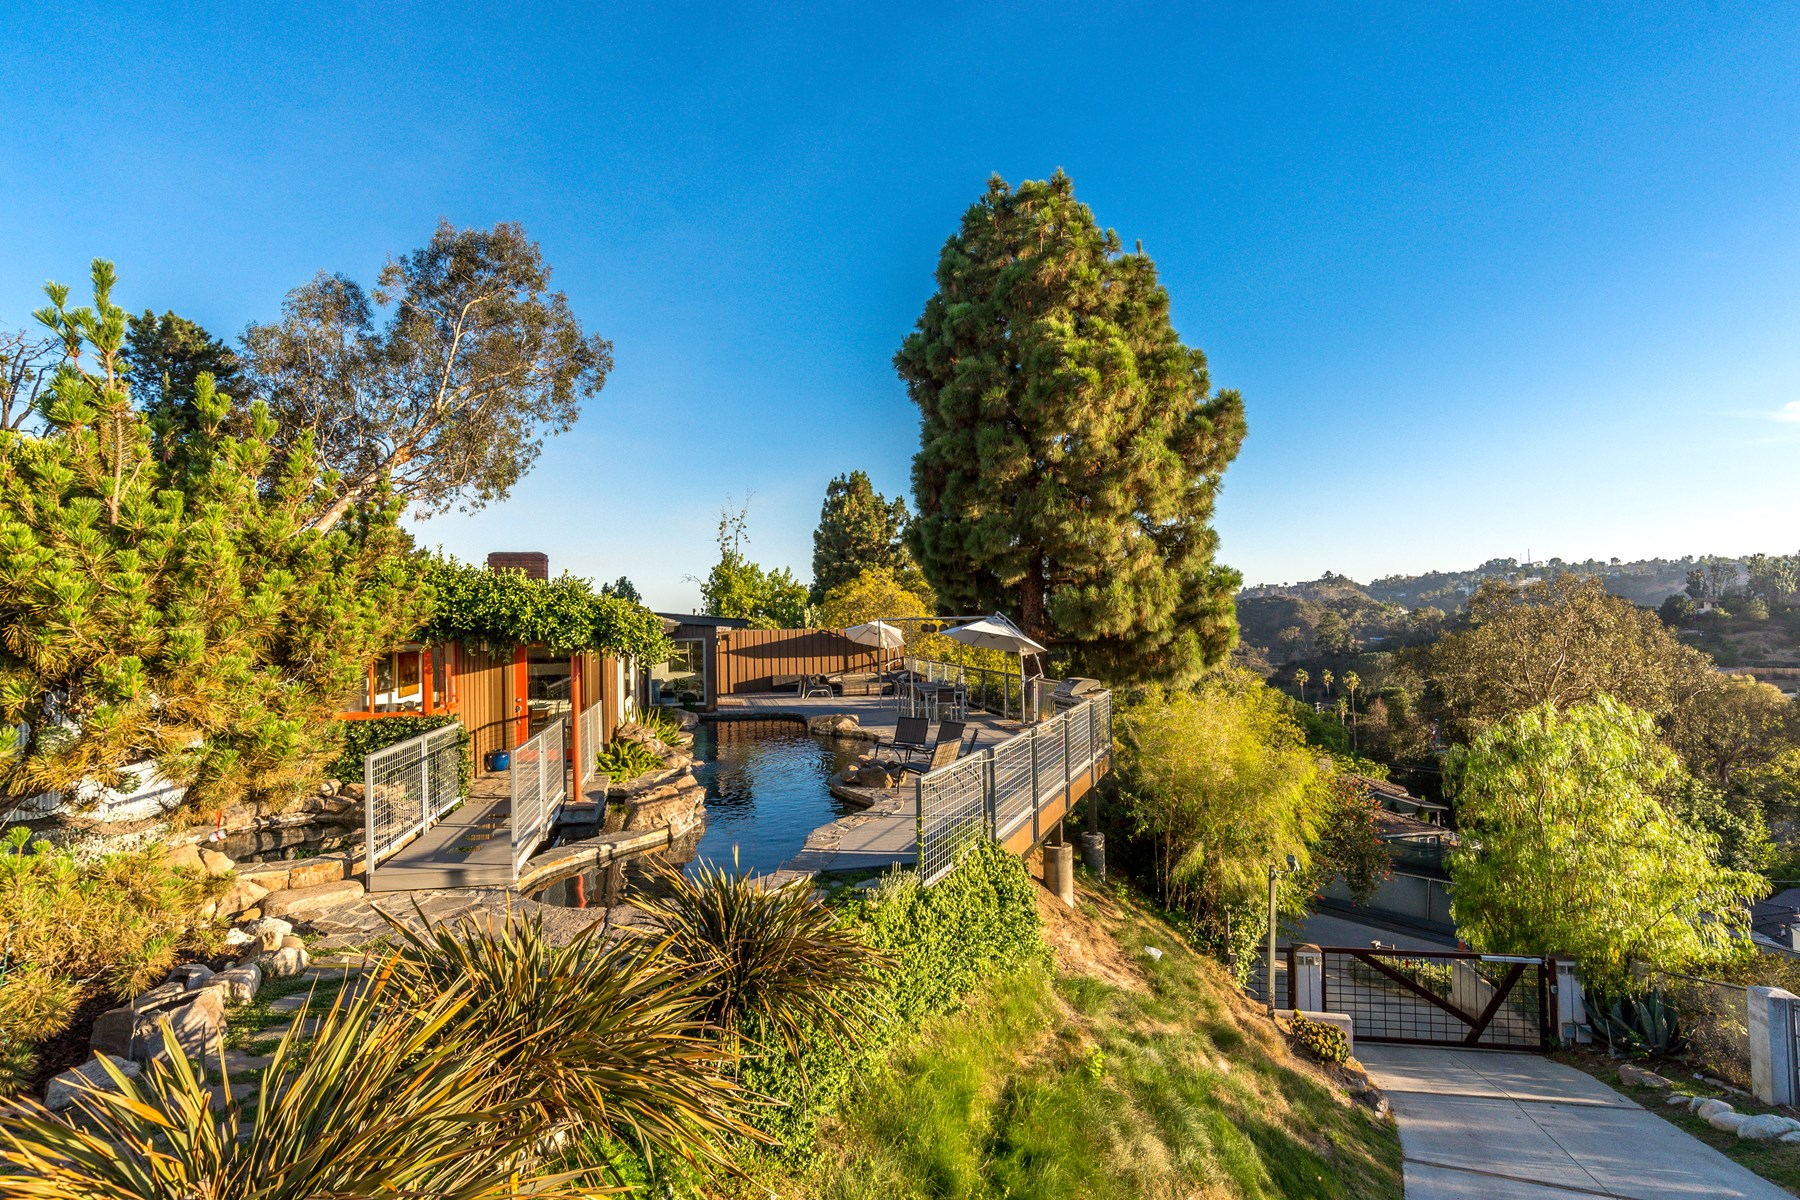 Single Family Home for Sale at Hollywood Hills Hideaway 2970 Briar Knoll Drive Hollywood Hills, Los Angeles, California, 90046 United States